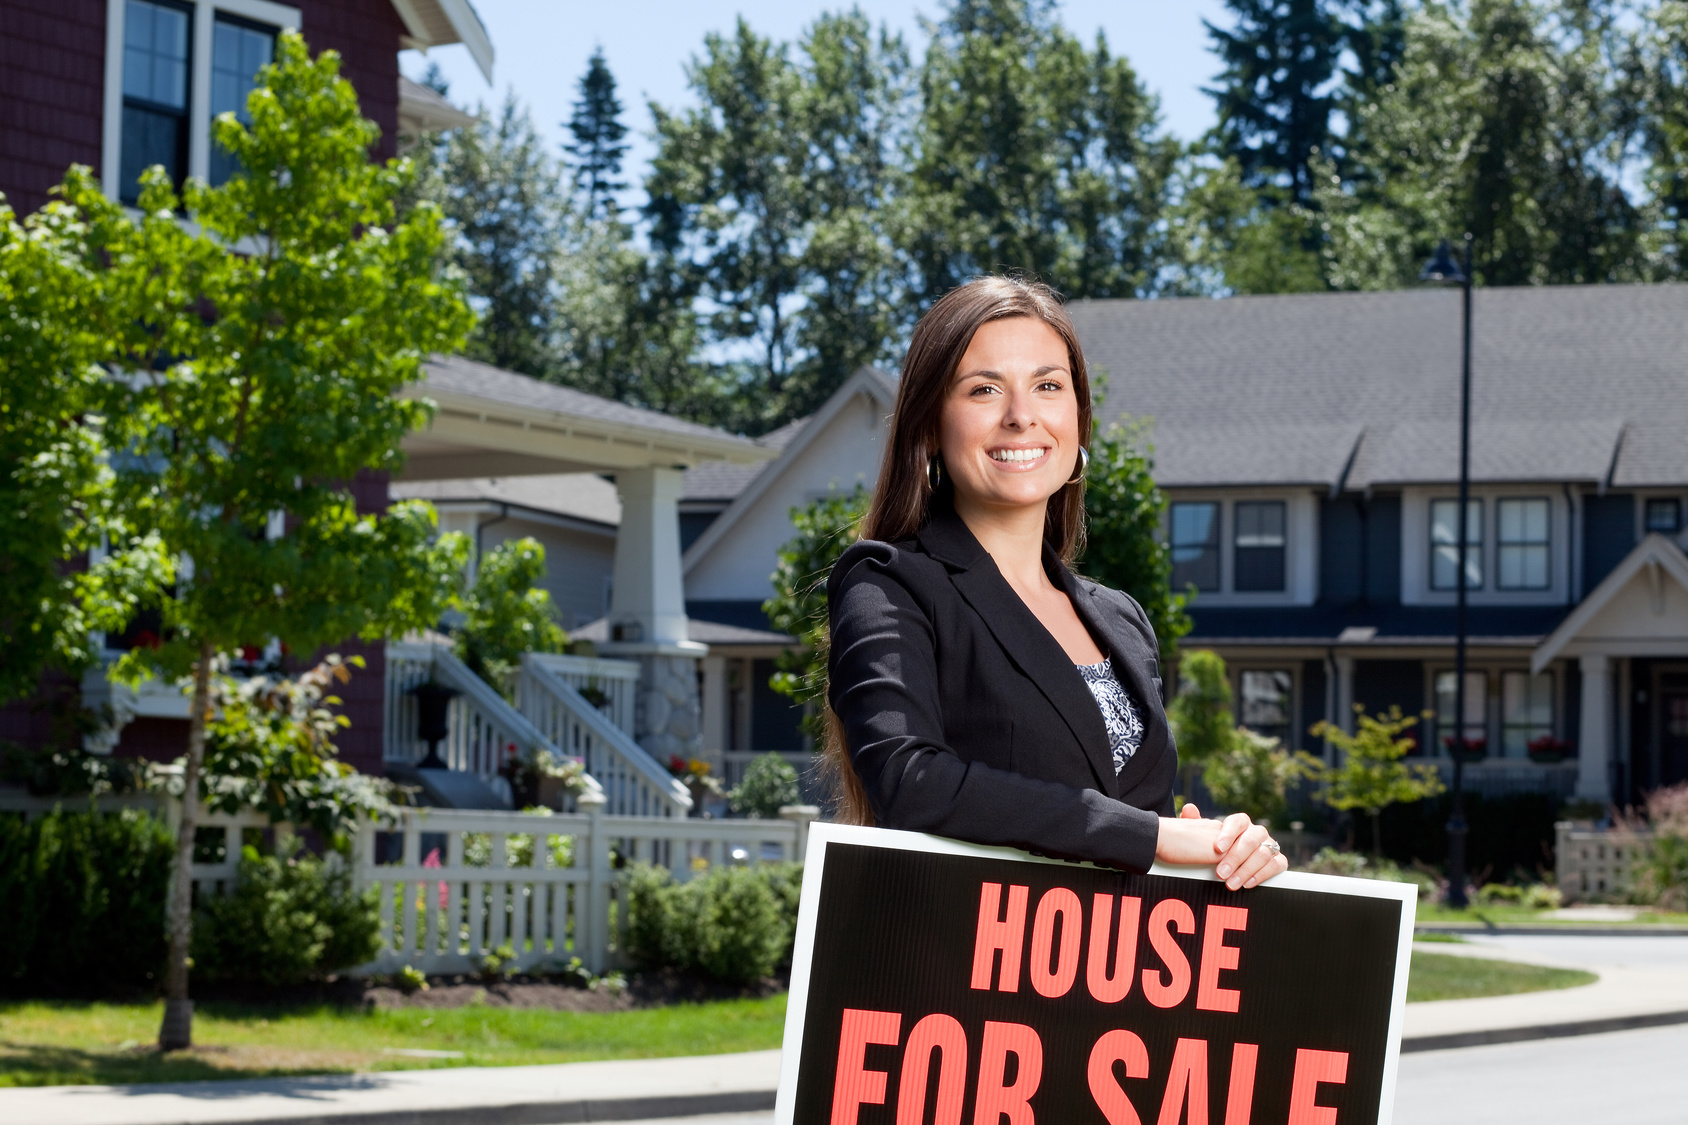 Professionally dressed real estate woman outside with a house for sale sign.